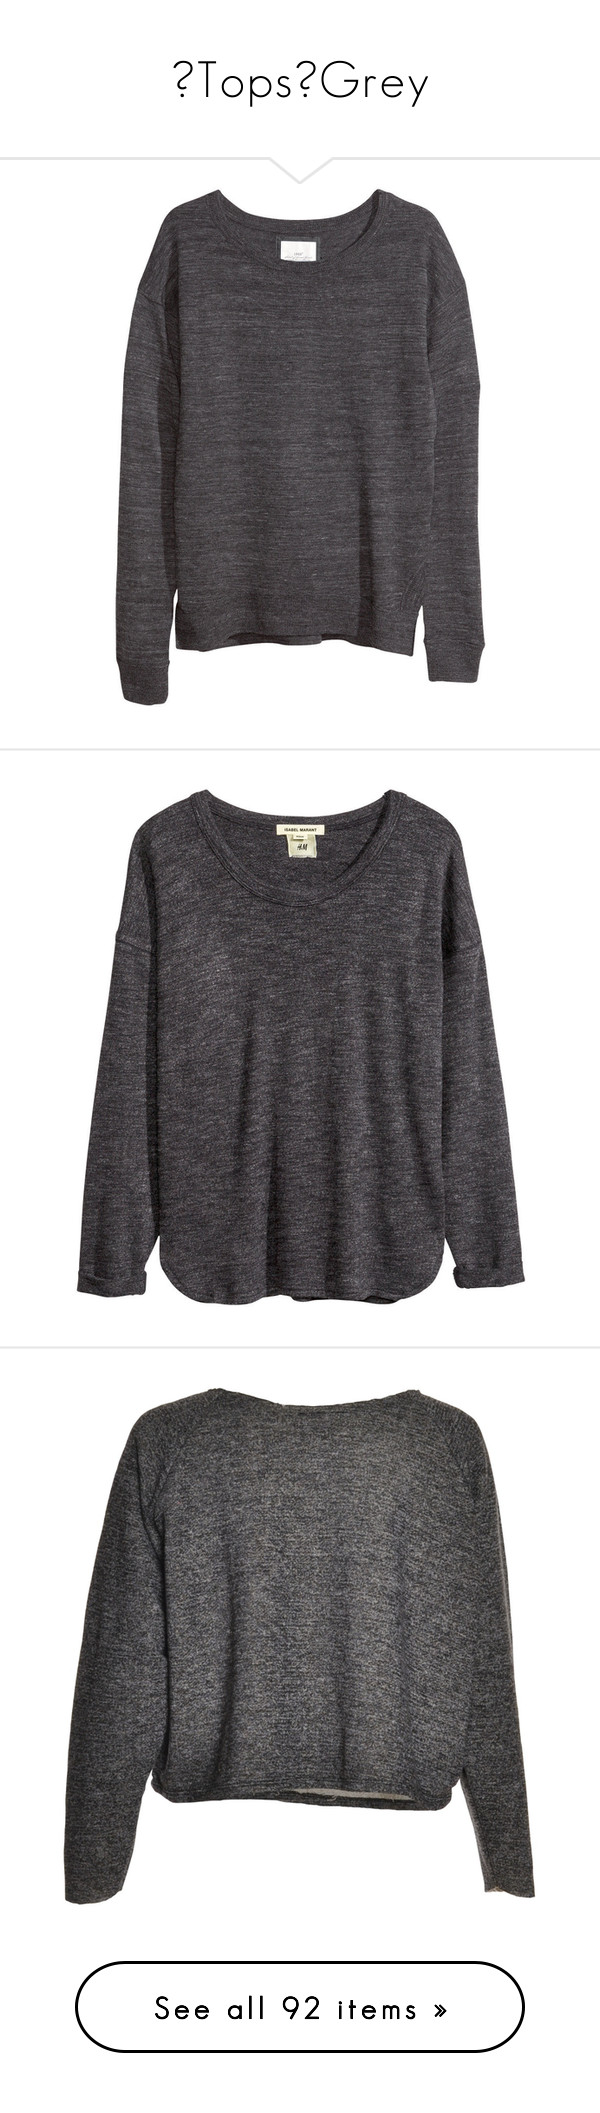 """【Tops】Grey"" by akihabara ❤ liked on Polyvore featuring grey, top, tops, sweaters, h&m, haut, dark grey, h&m sweater, slit top and jumpers sweaters"